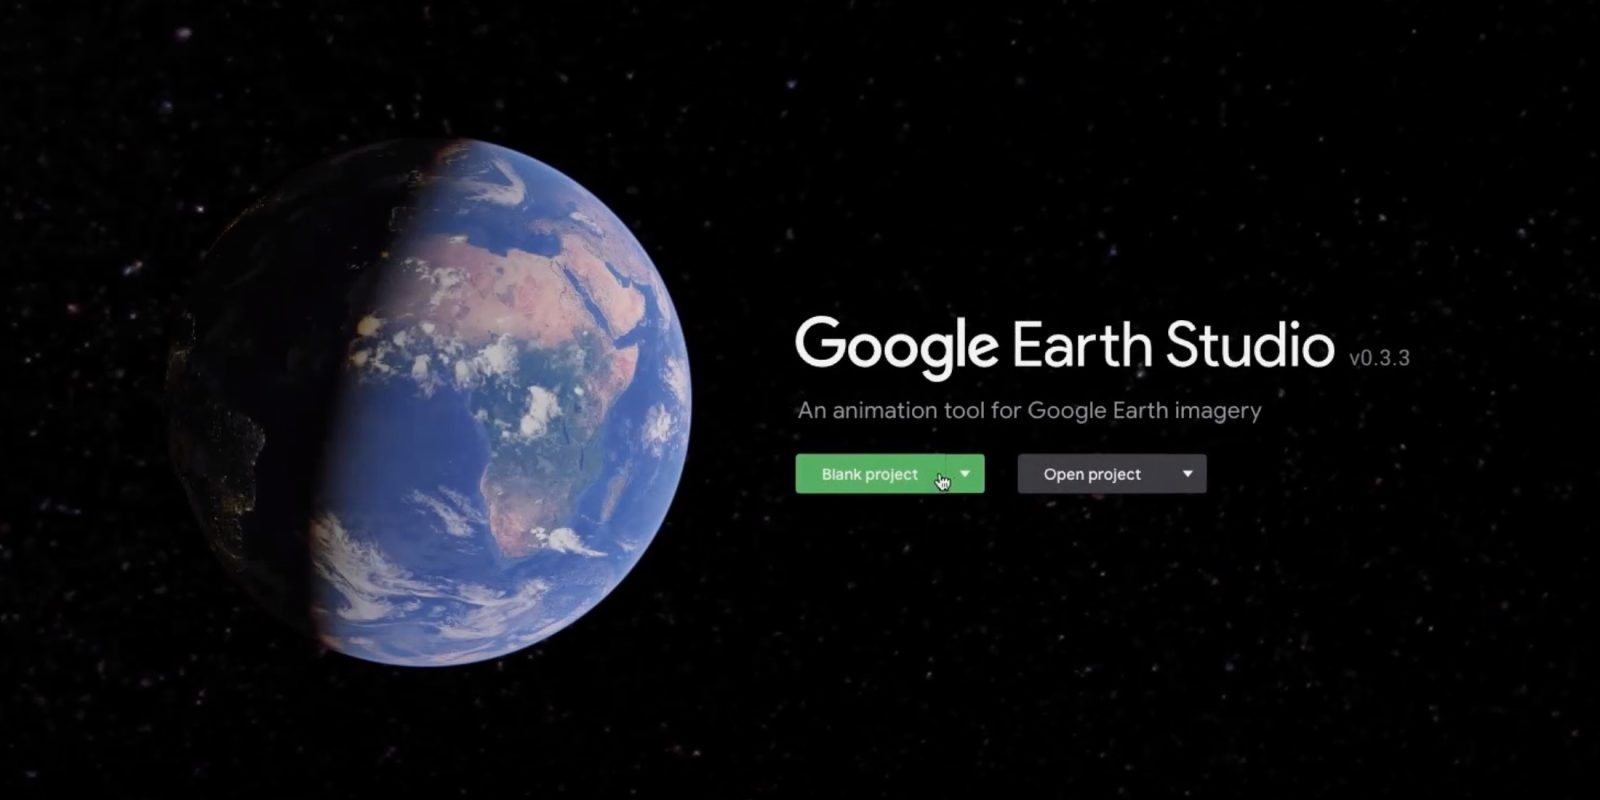 Google Earth Studio Is An Animation Tool To Create Geographic